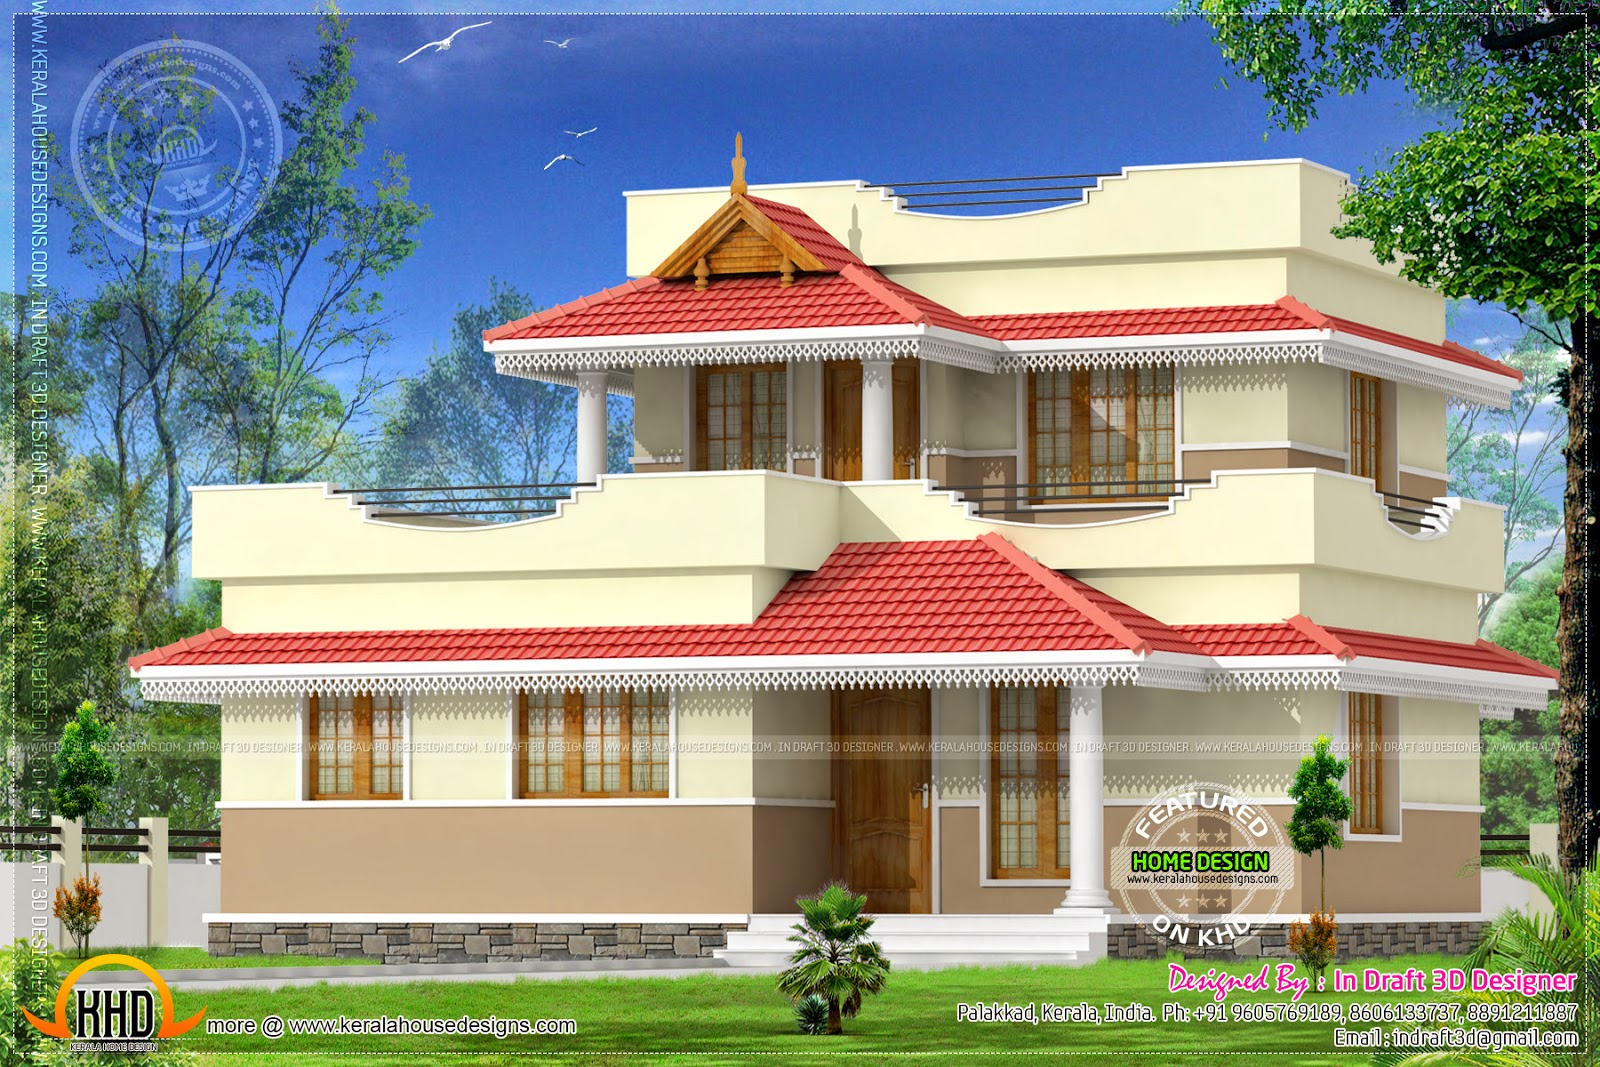 Double storied budget house kerala home design and floor for Small budget house plans in kerala